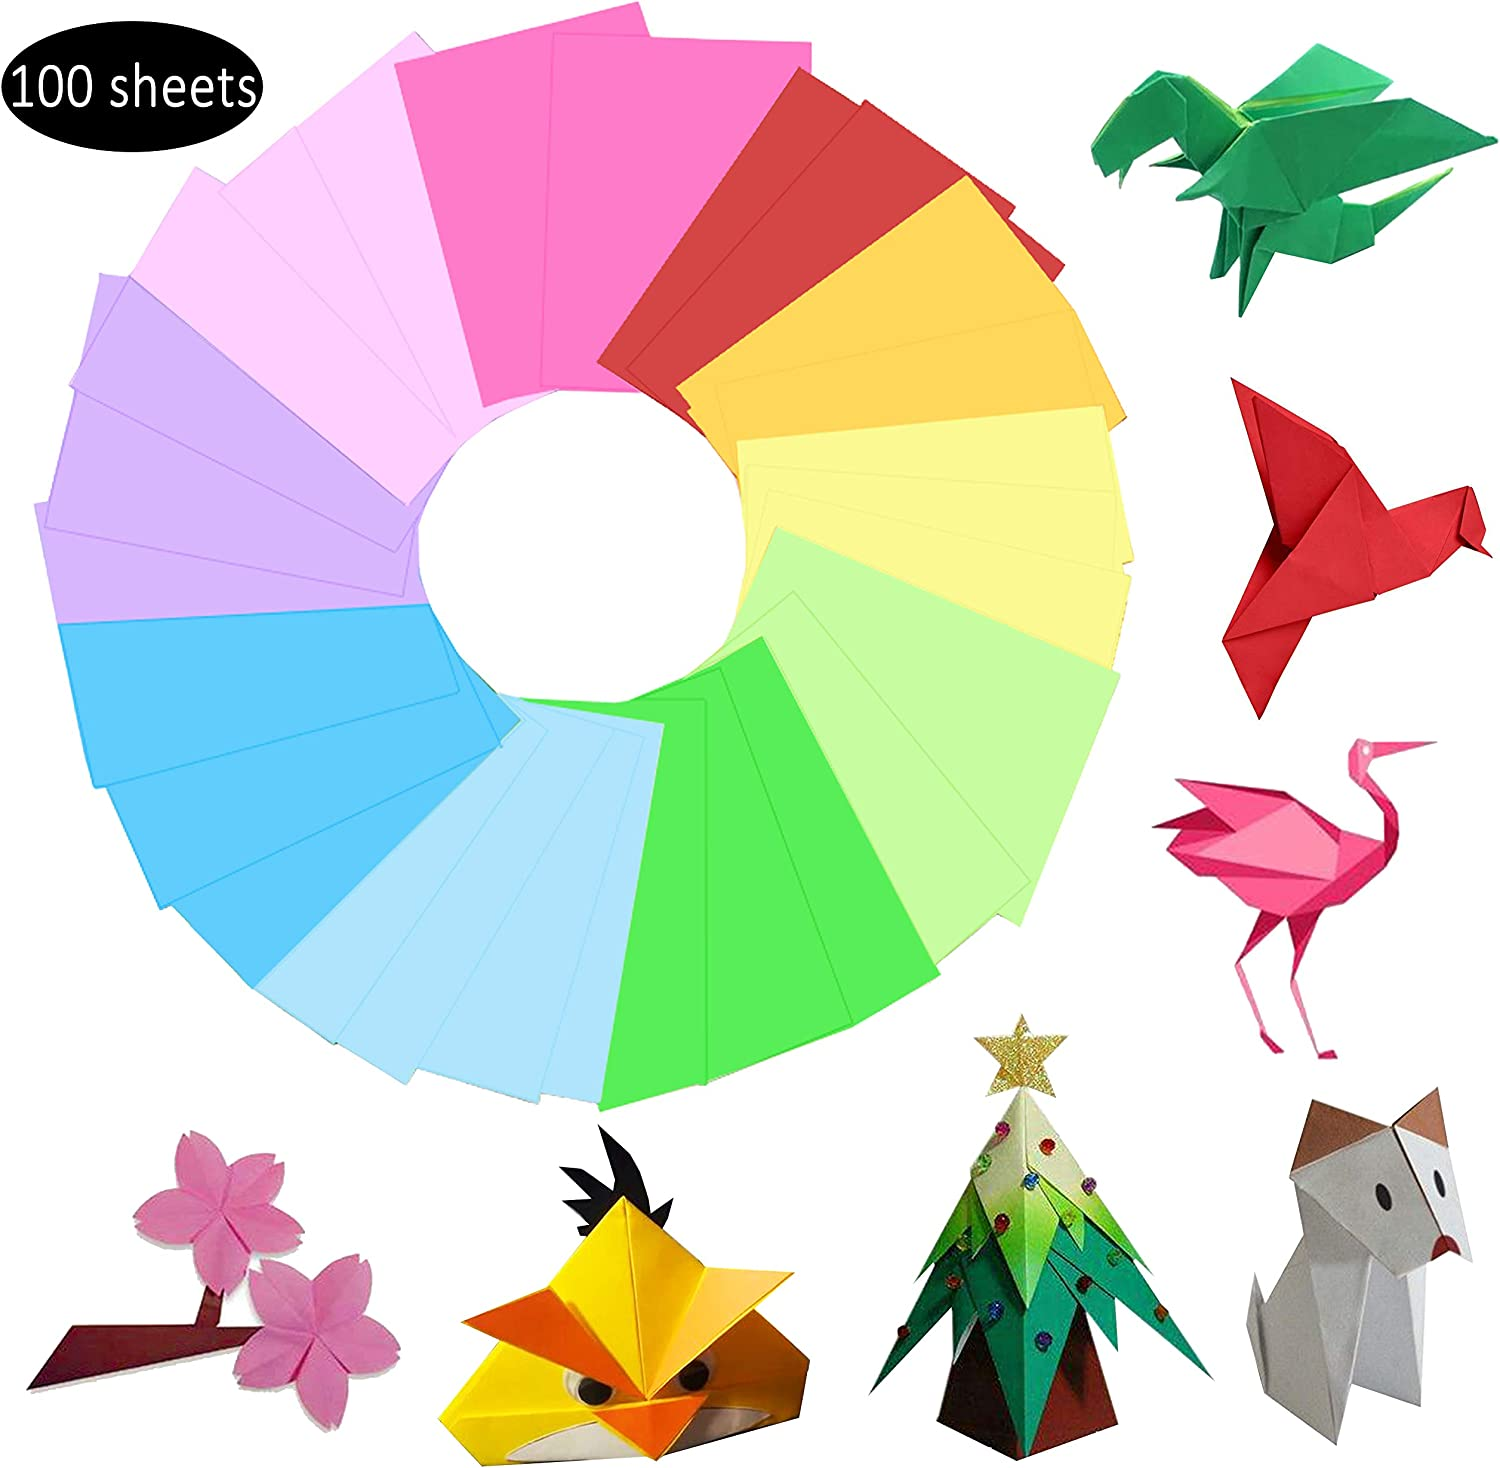 Hbsite Origami Paper 100 Sheets 7.9 inch Square Double Sided 10 Vivid Colors for Beginners Trainning and Crafts Projects